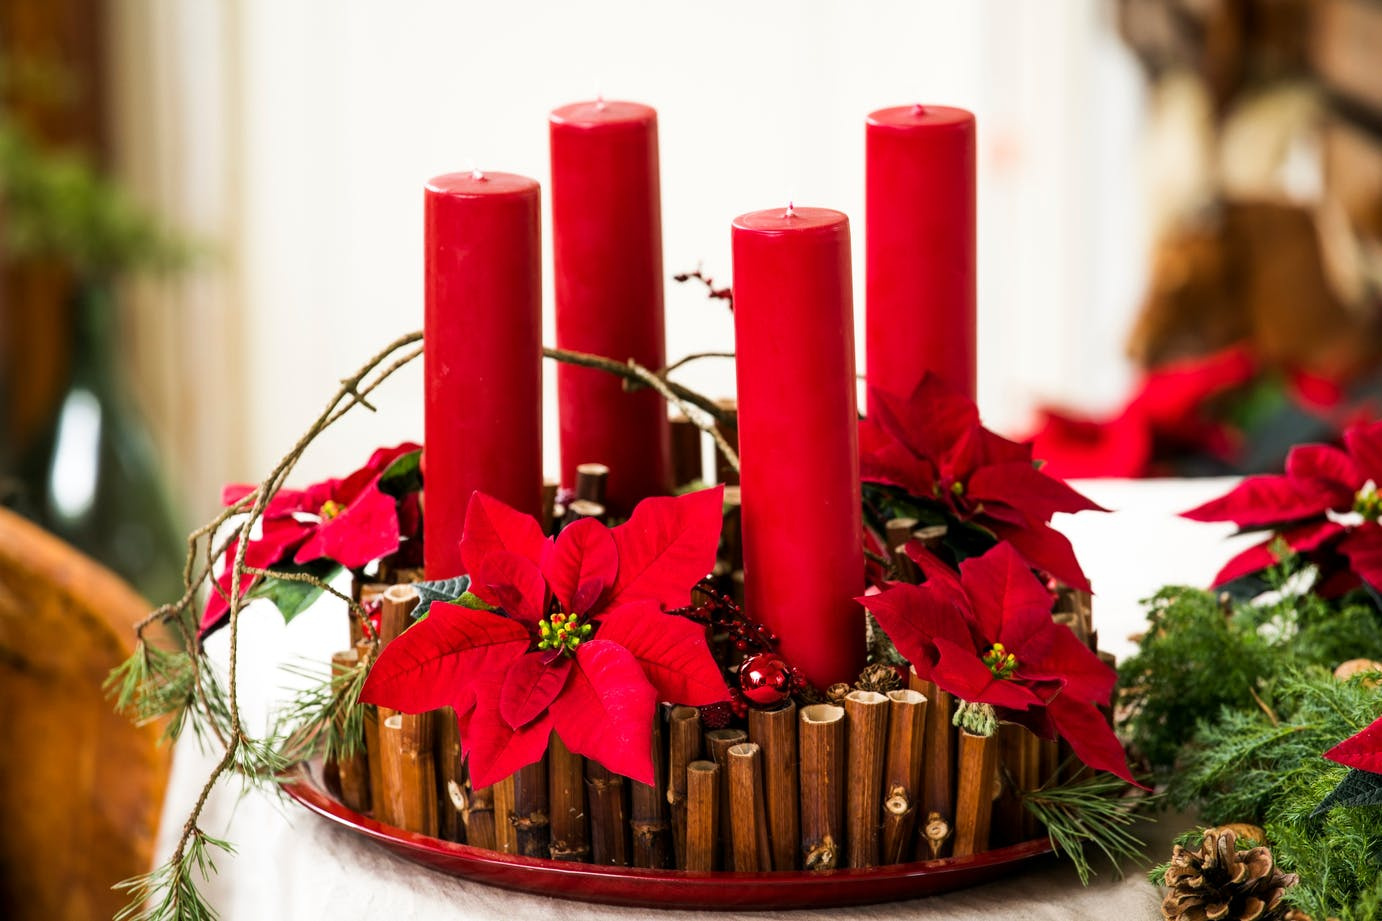 Ready for Christmas: Advent wreath designs from the world of stars!